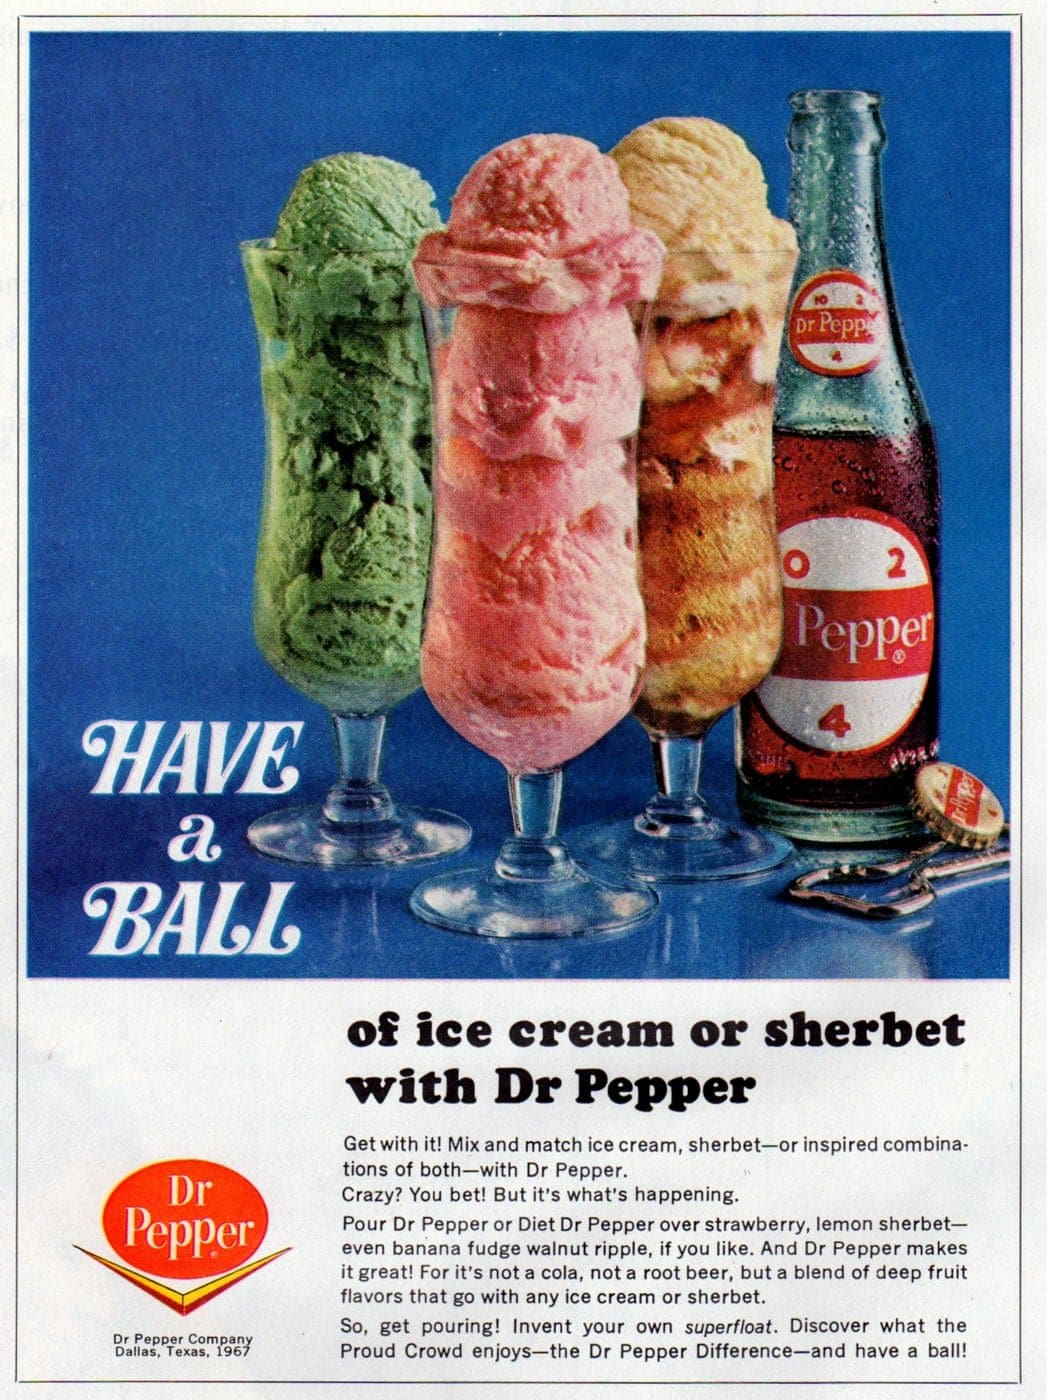 Dr Pepper ice cream and sherbet floats recipe from 1967